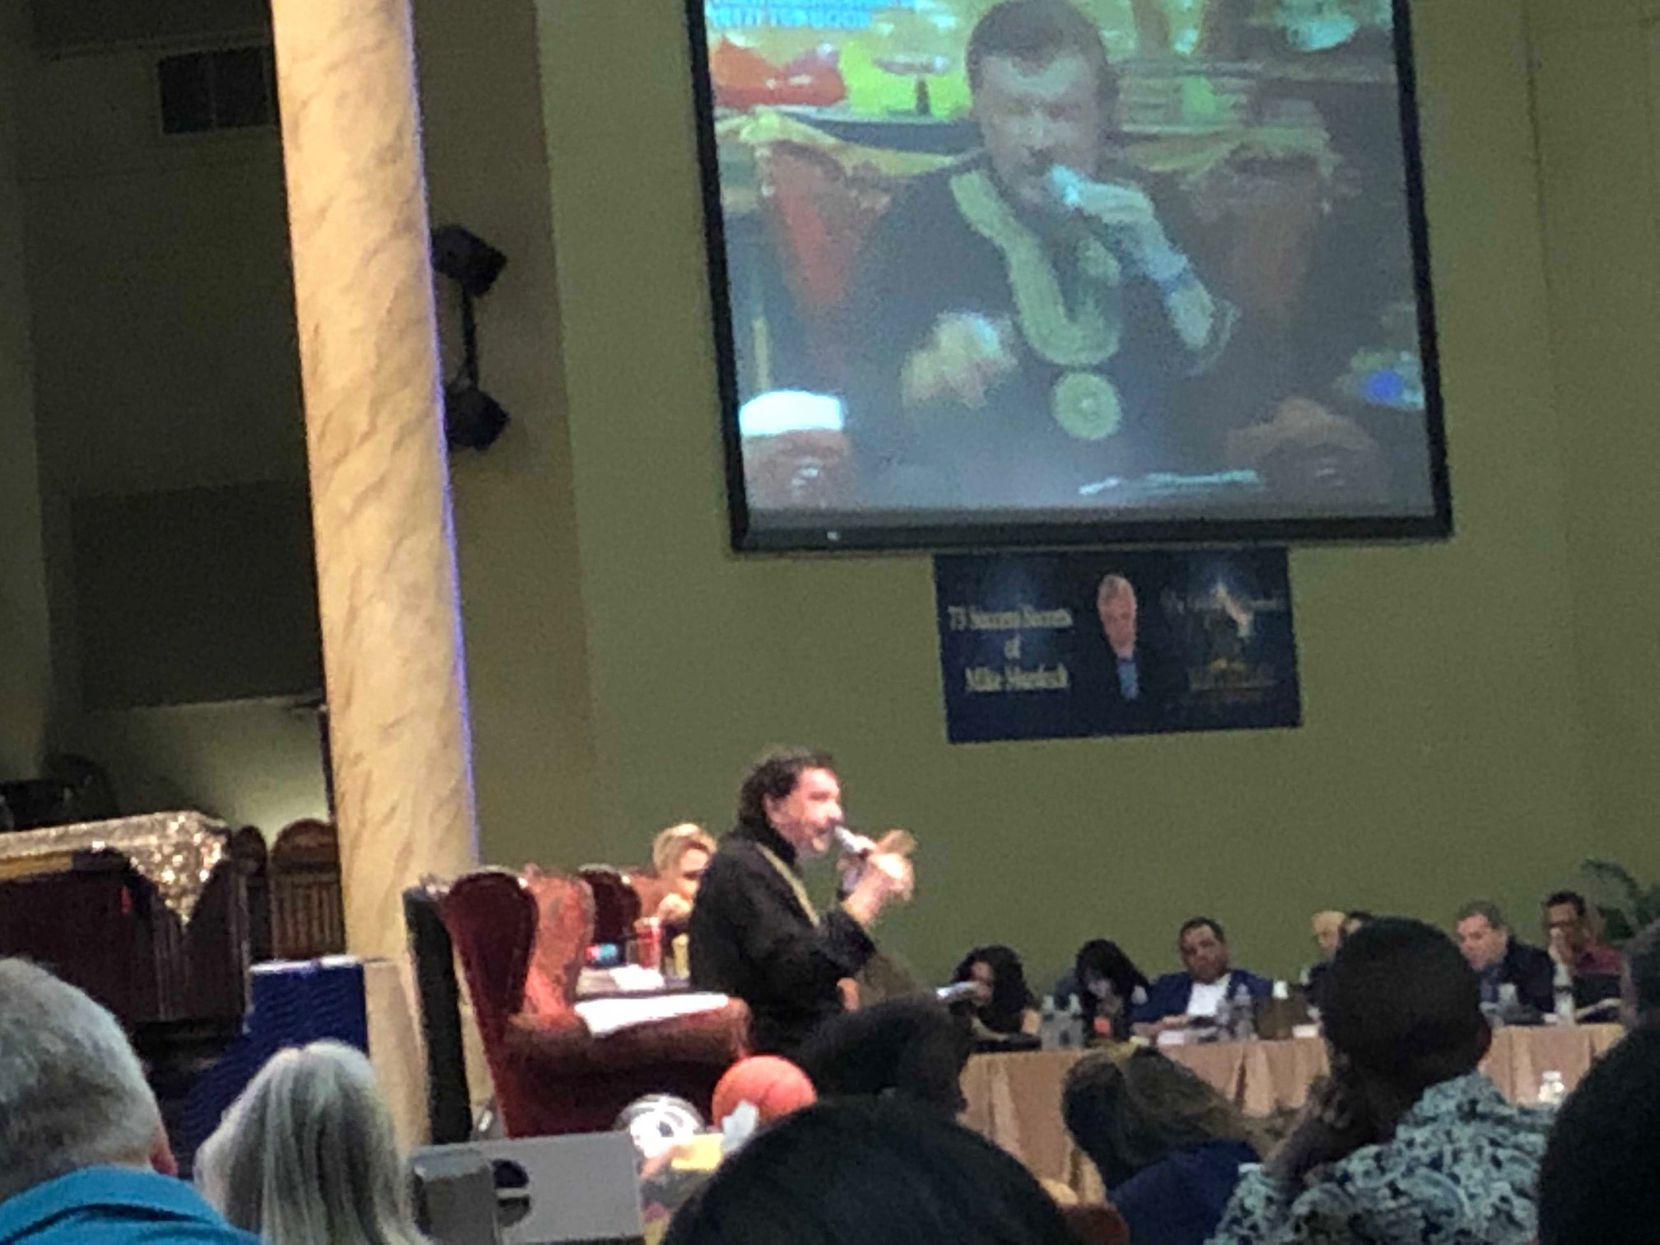 Mike Murdock preaches in front of several hundred people and four TV cameras at his Haltom City complex. He posts his sermons about money on the web and also presents them on religious TV stations across the U.S.